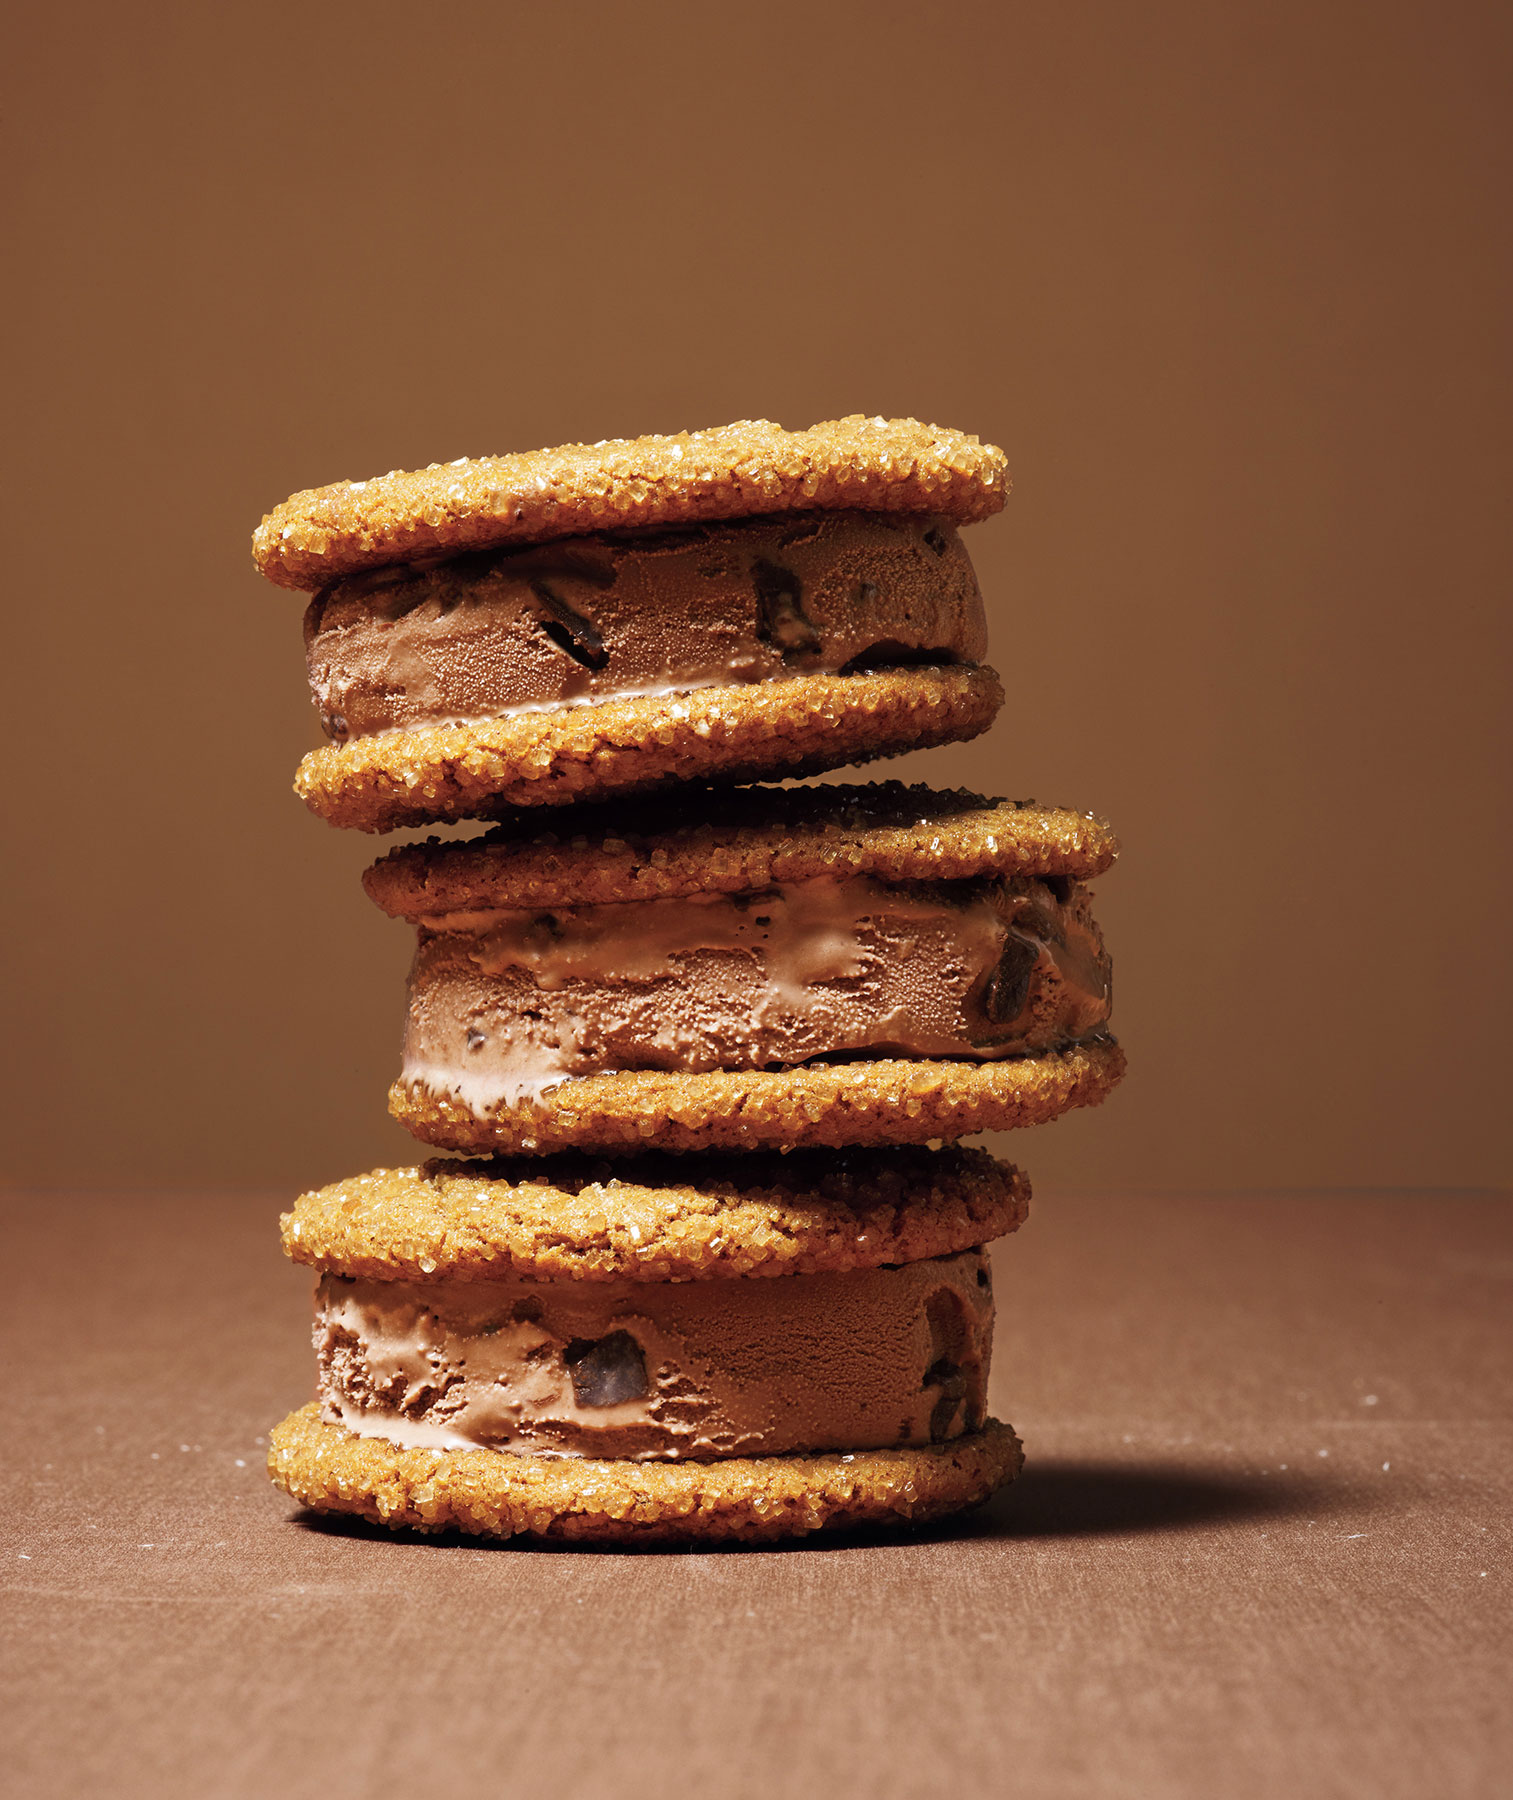 Halloween desserts and Halloween treats - Molasses-Ginger Chocolate Ice Cream Sandwiches